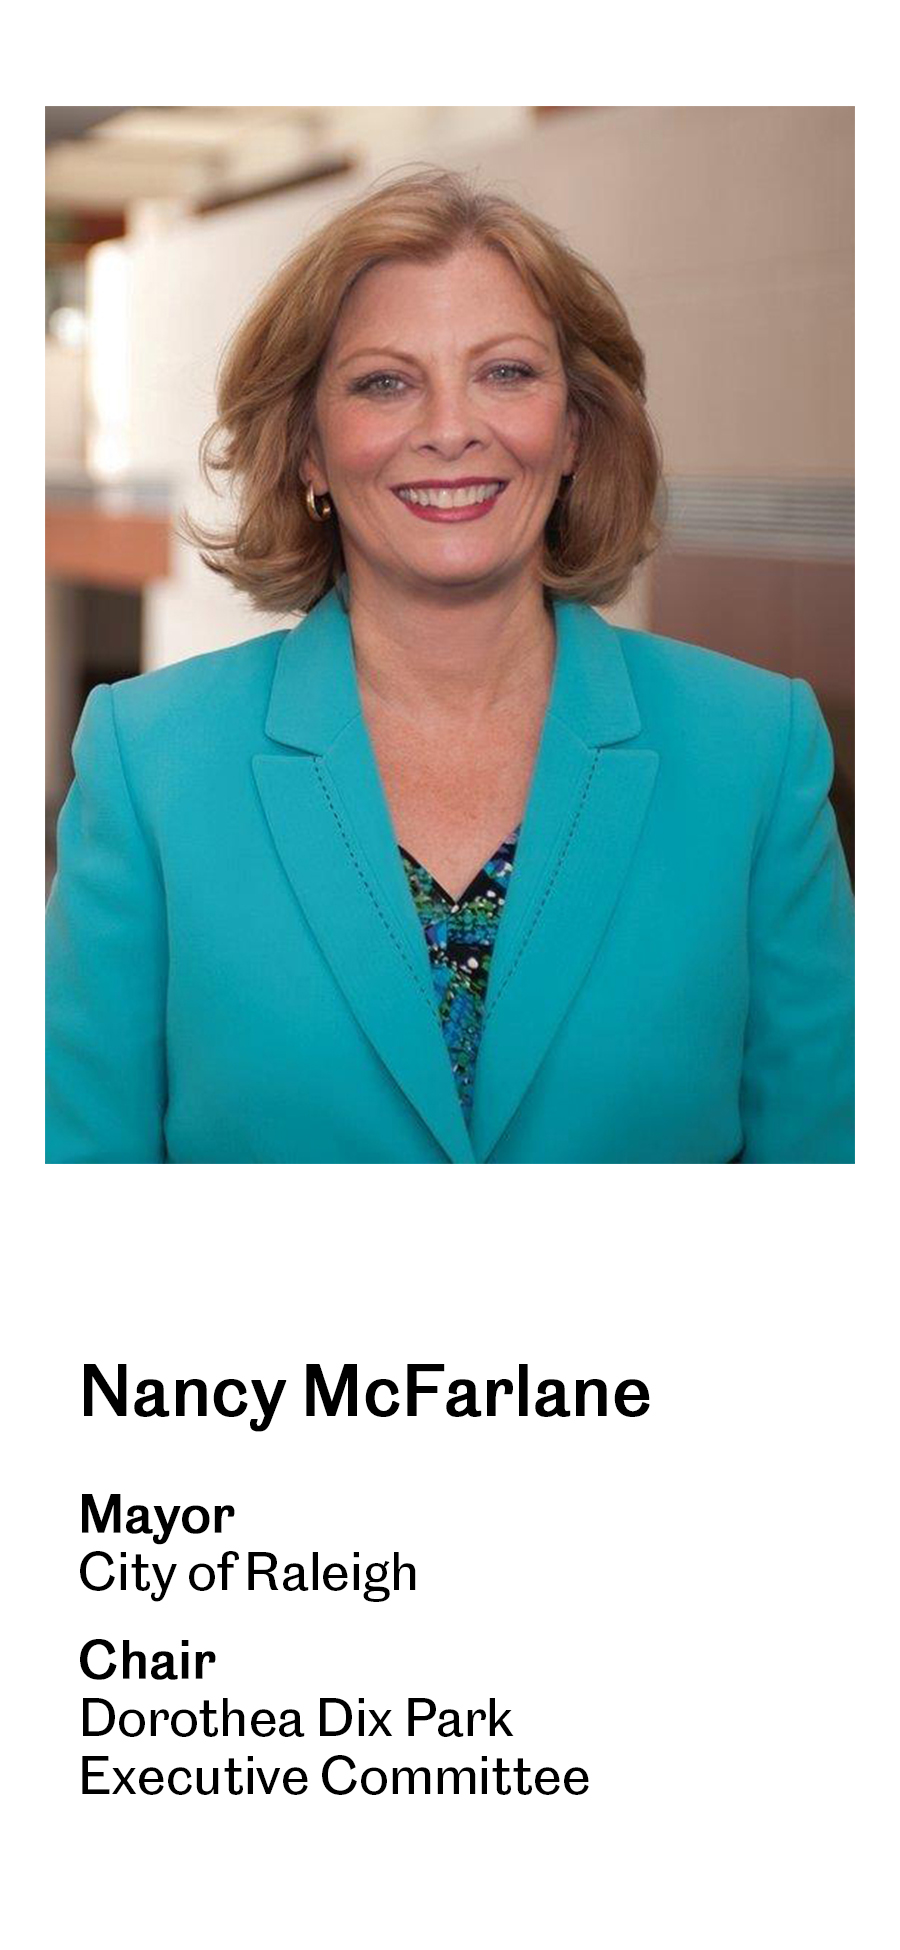 Nancy McFarlane Headshot